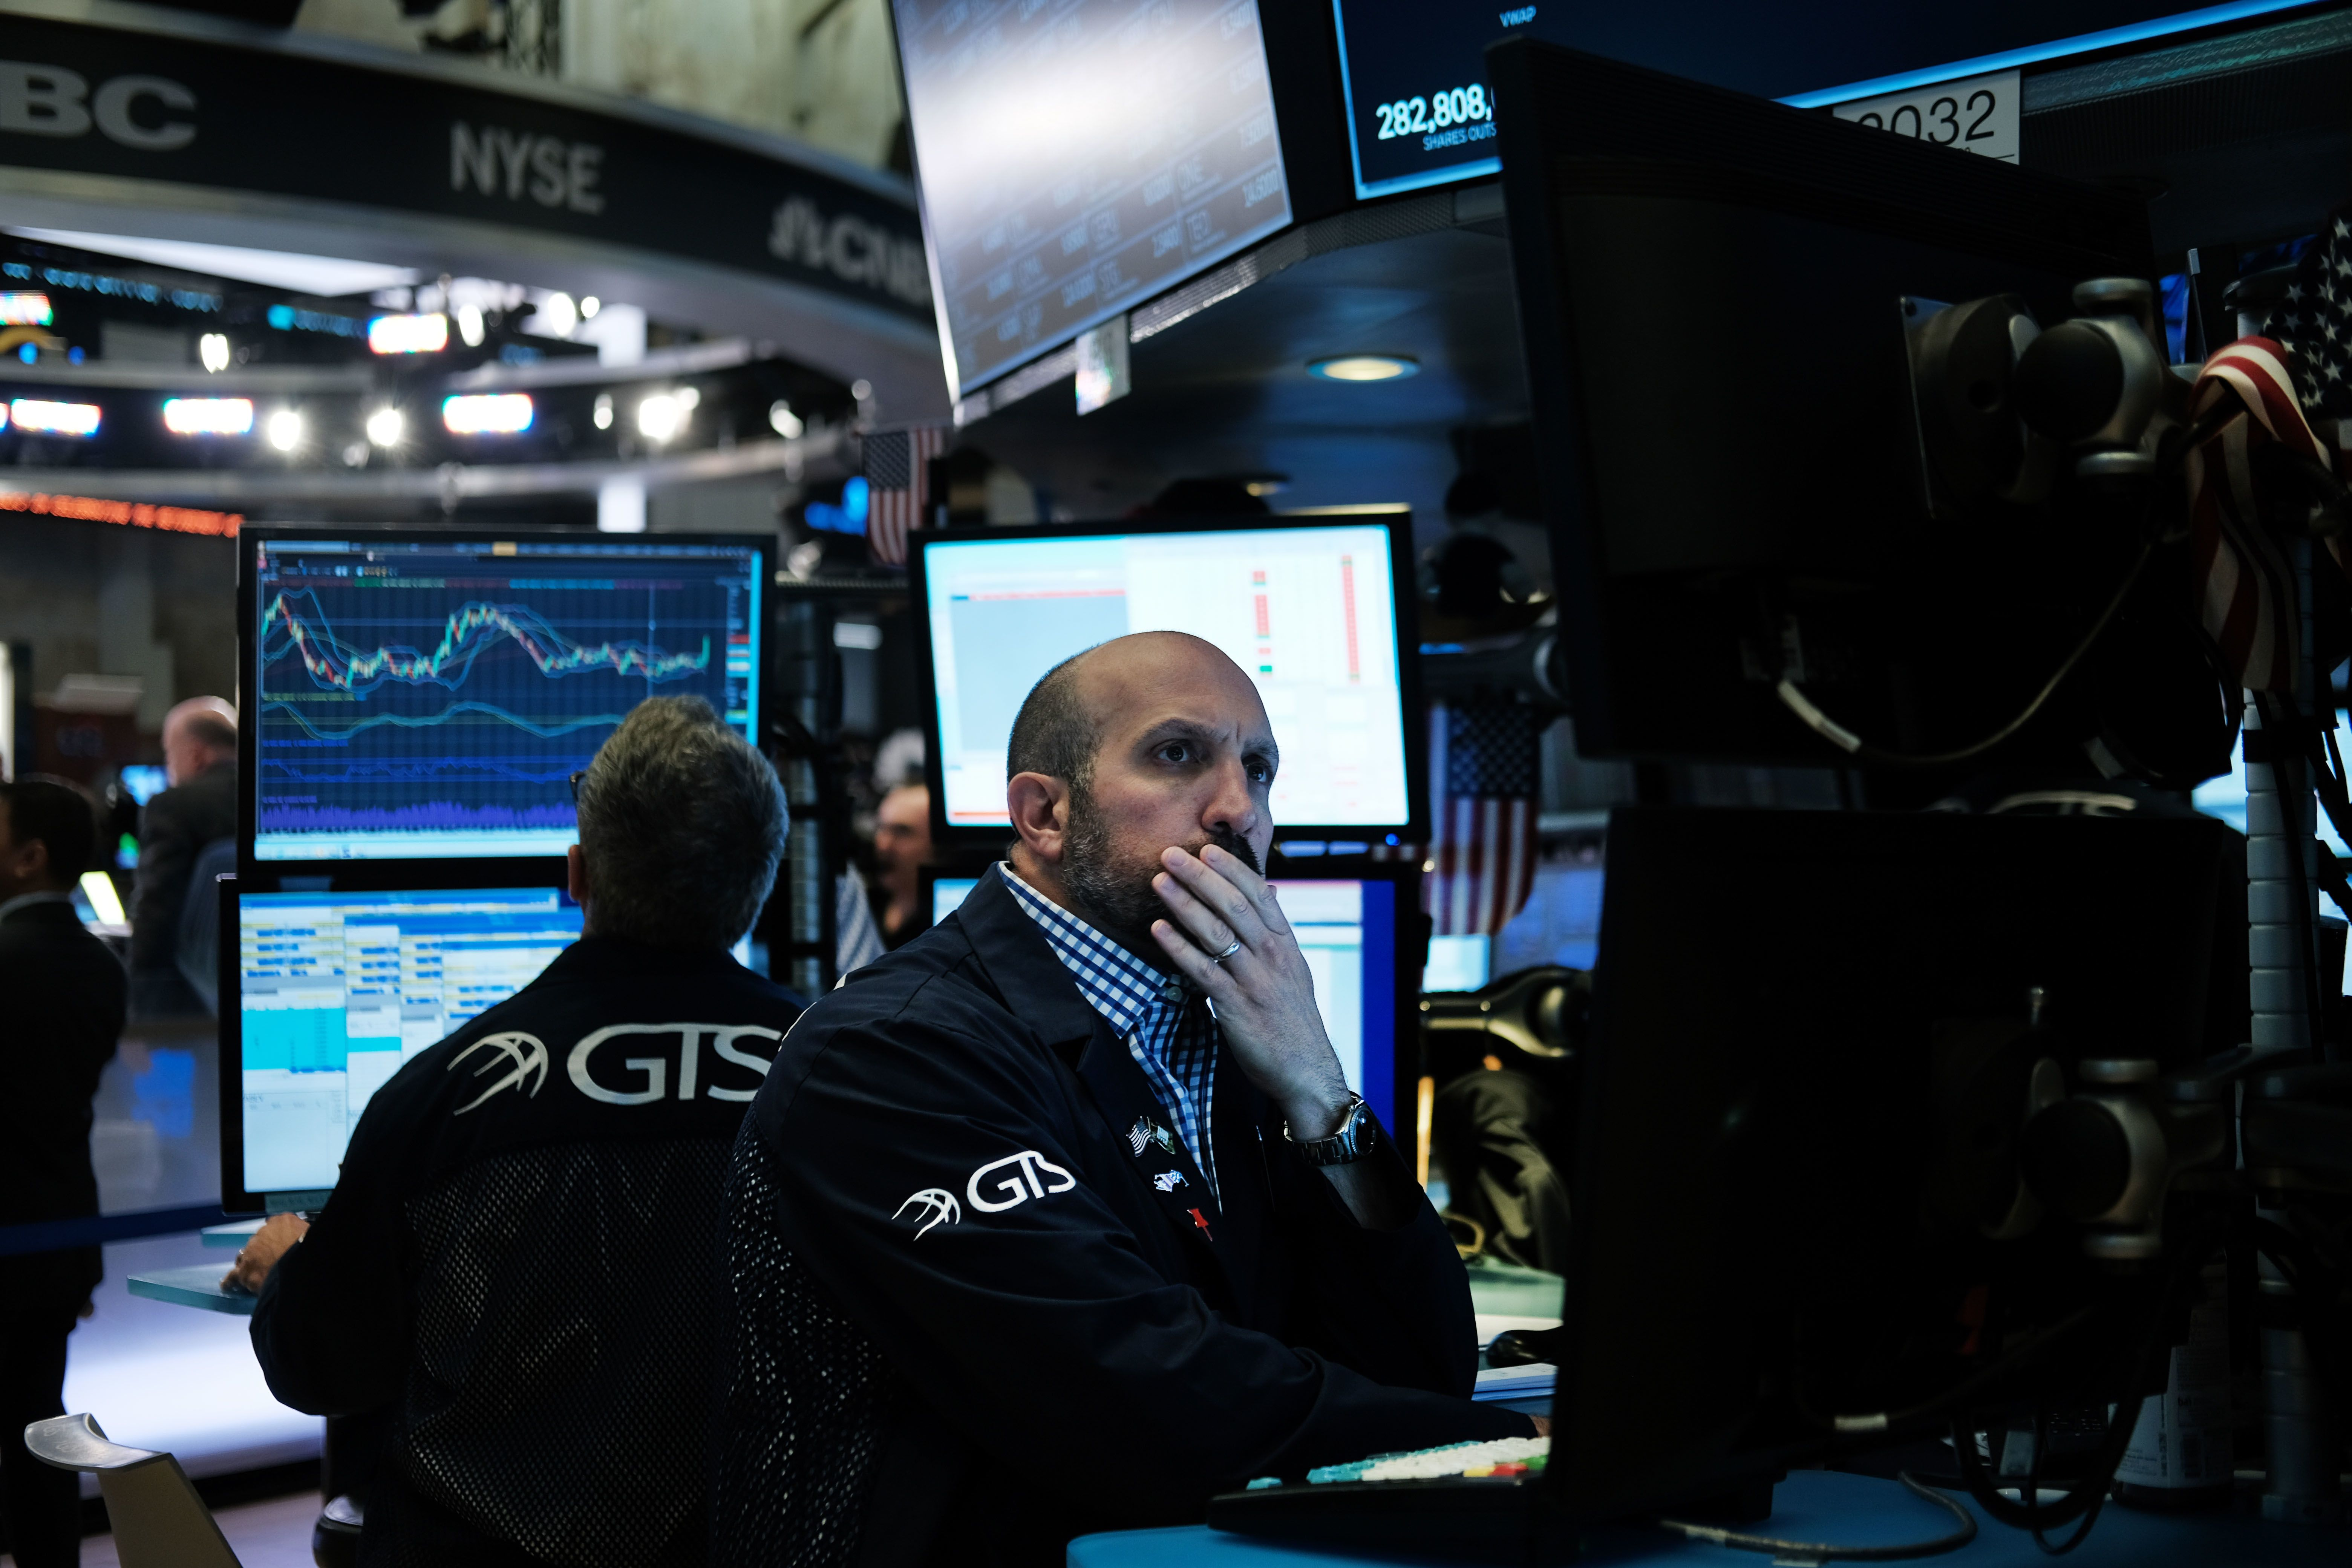 The market's drop in May felt serious, but it is normal for stocks